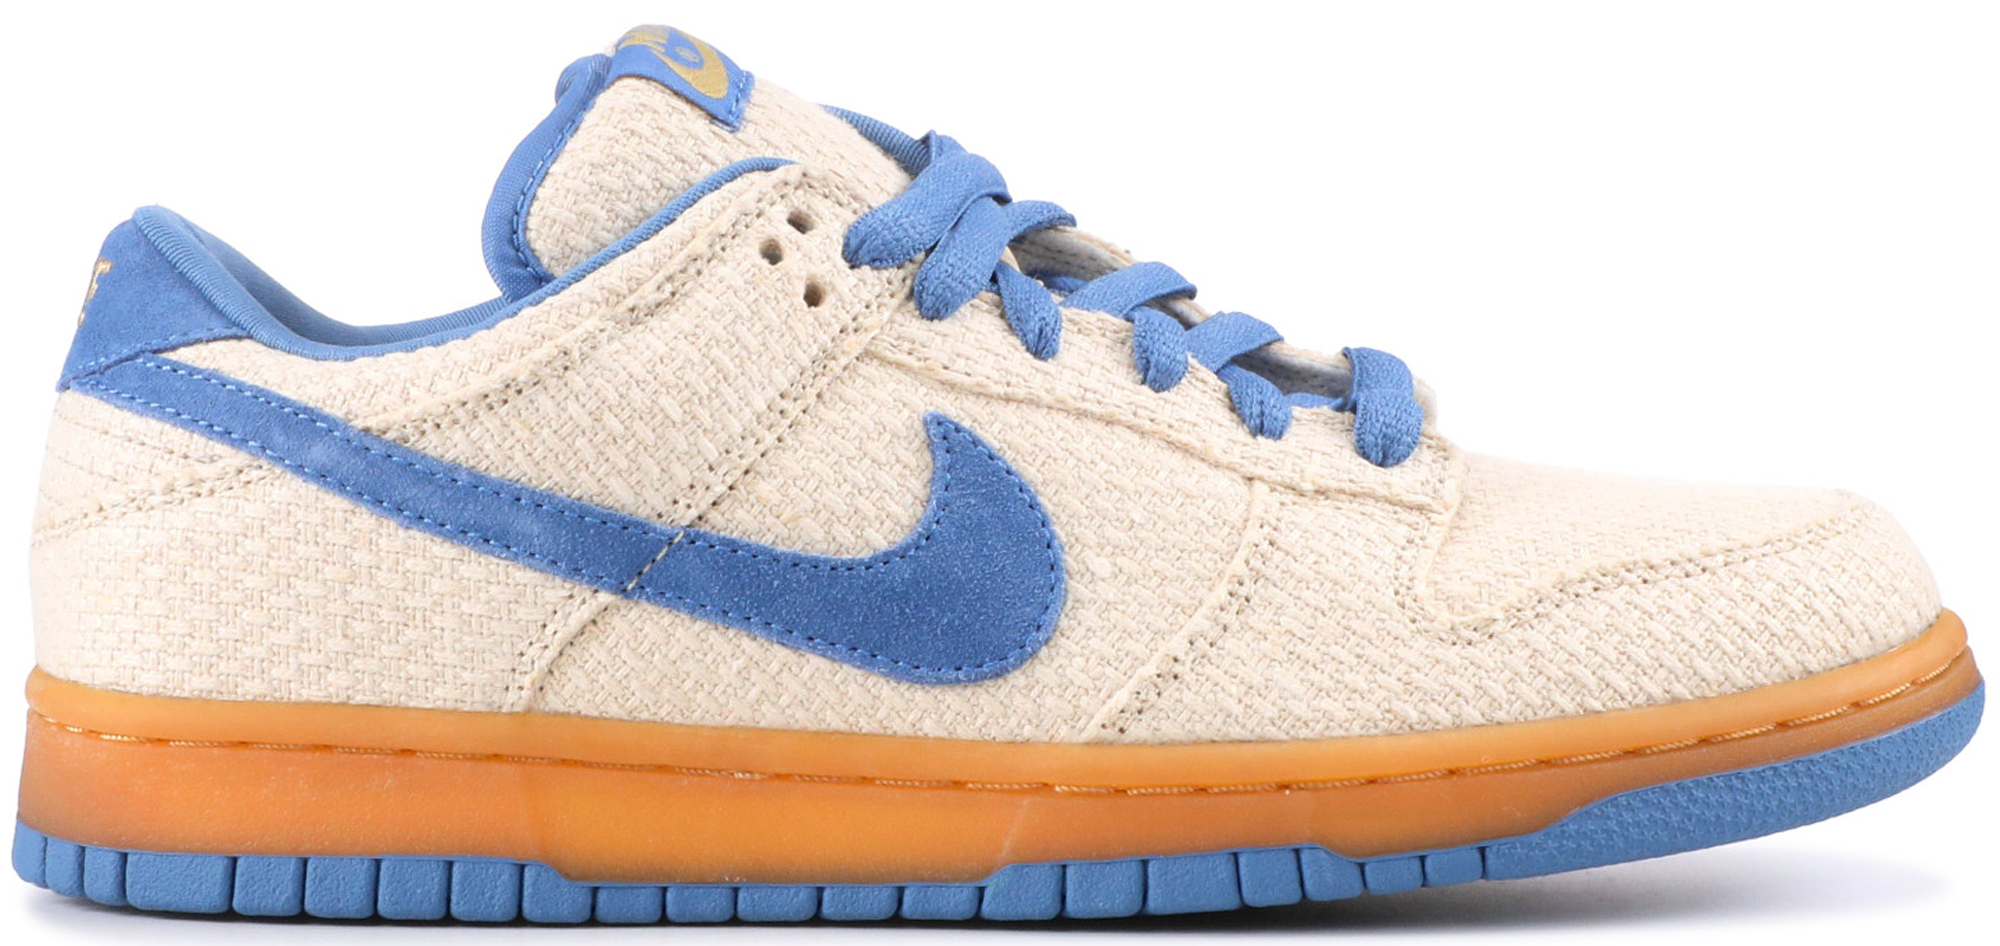 Nike SB Dunk Low Hemp Blue